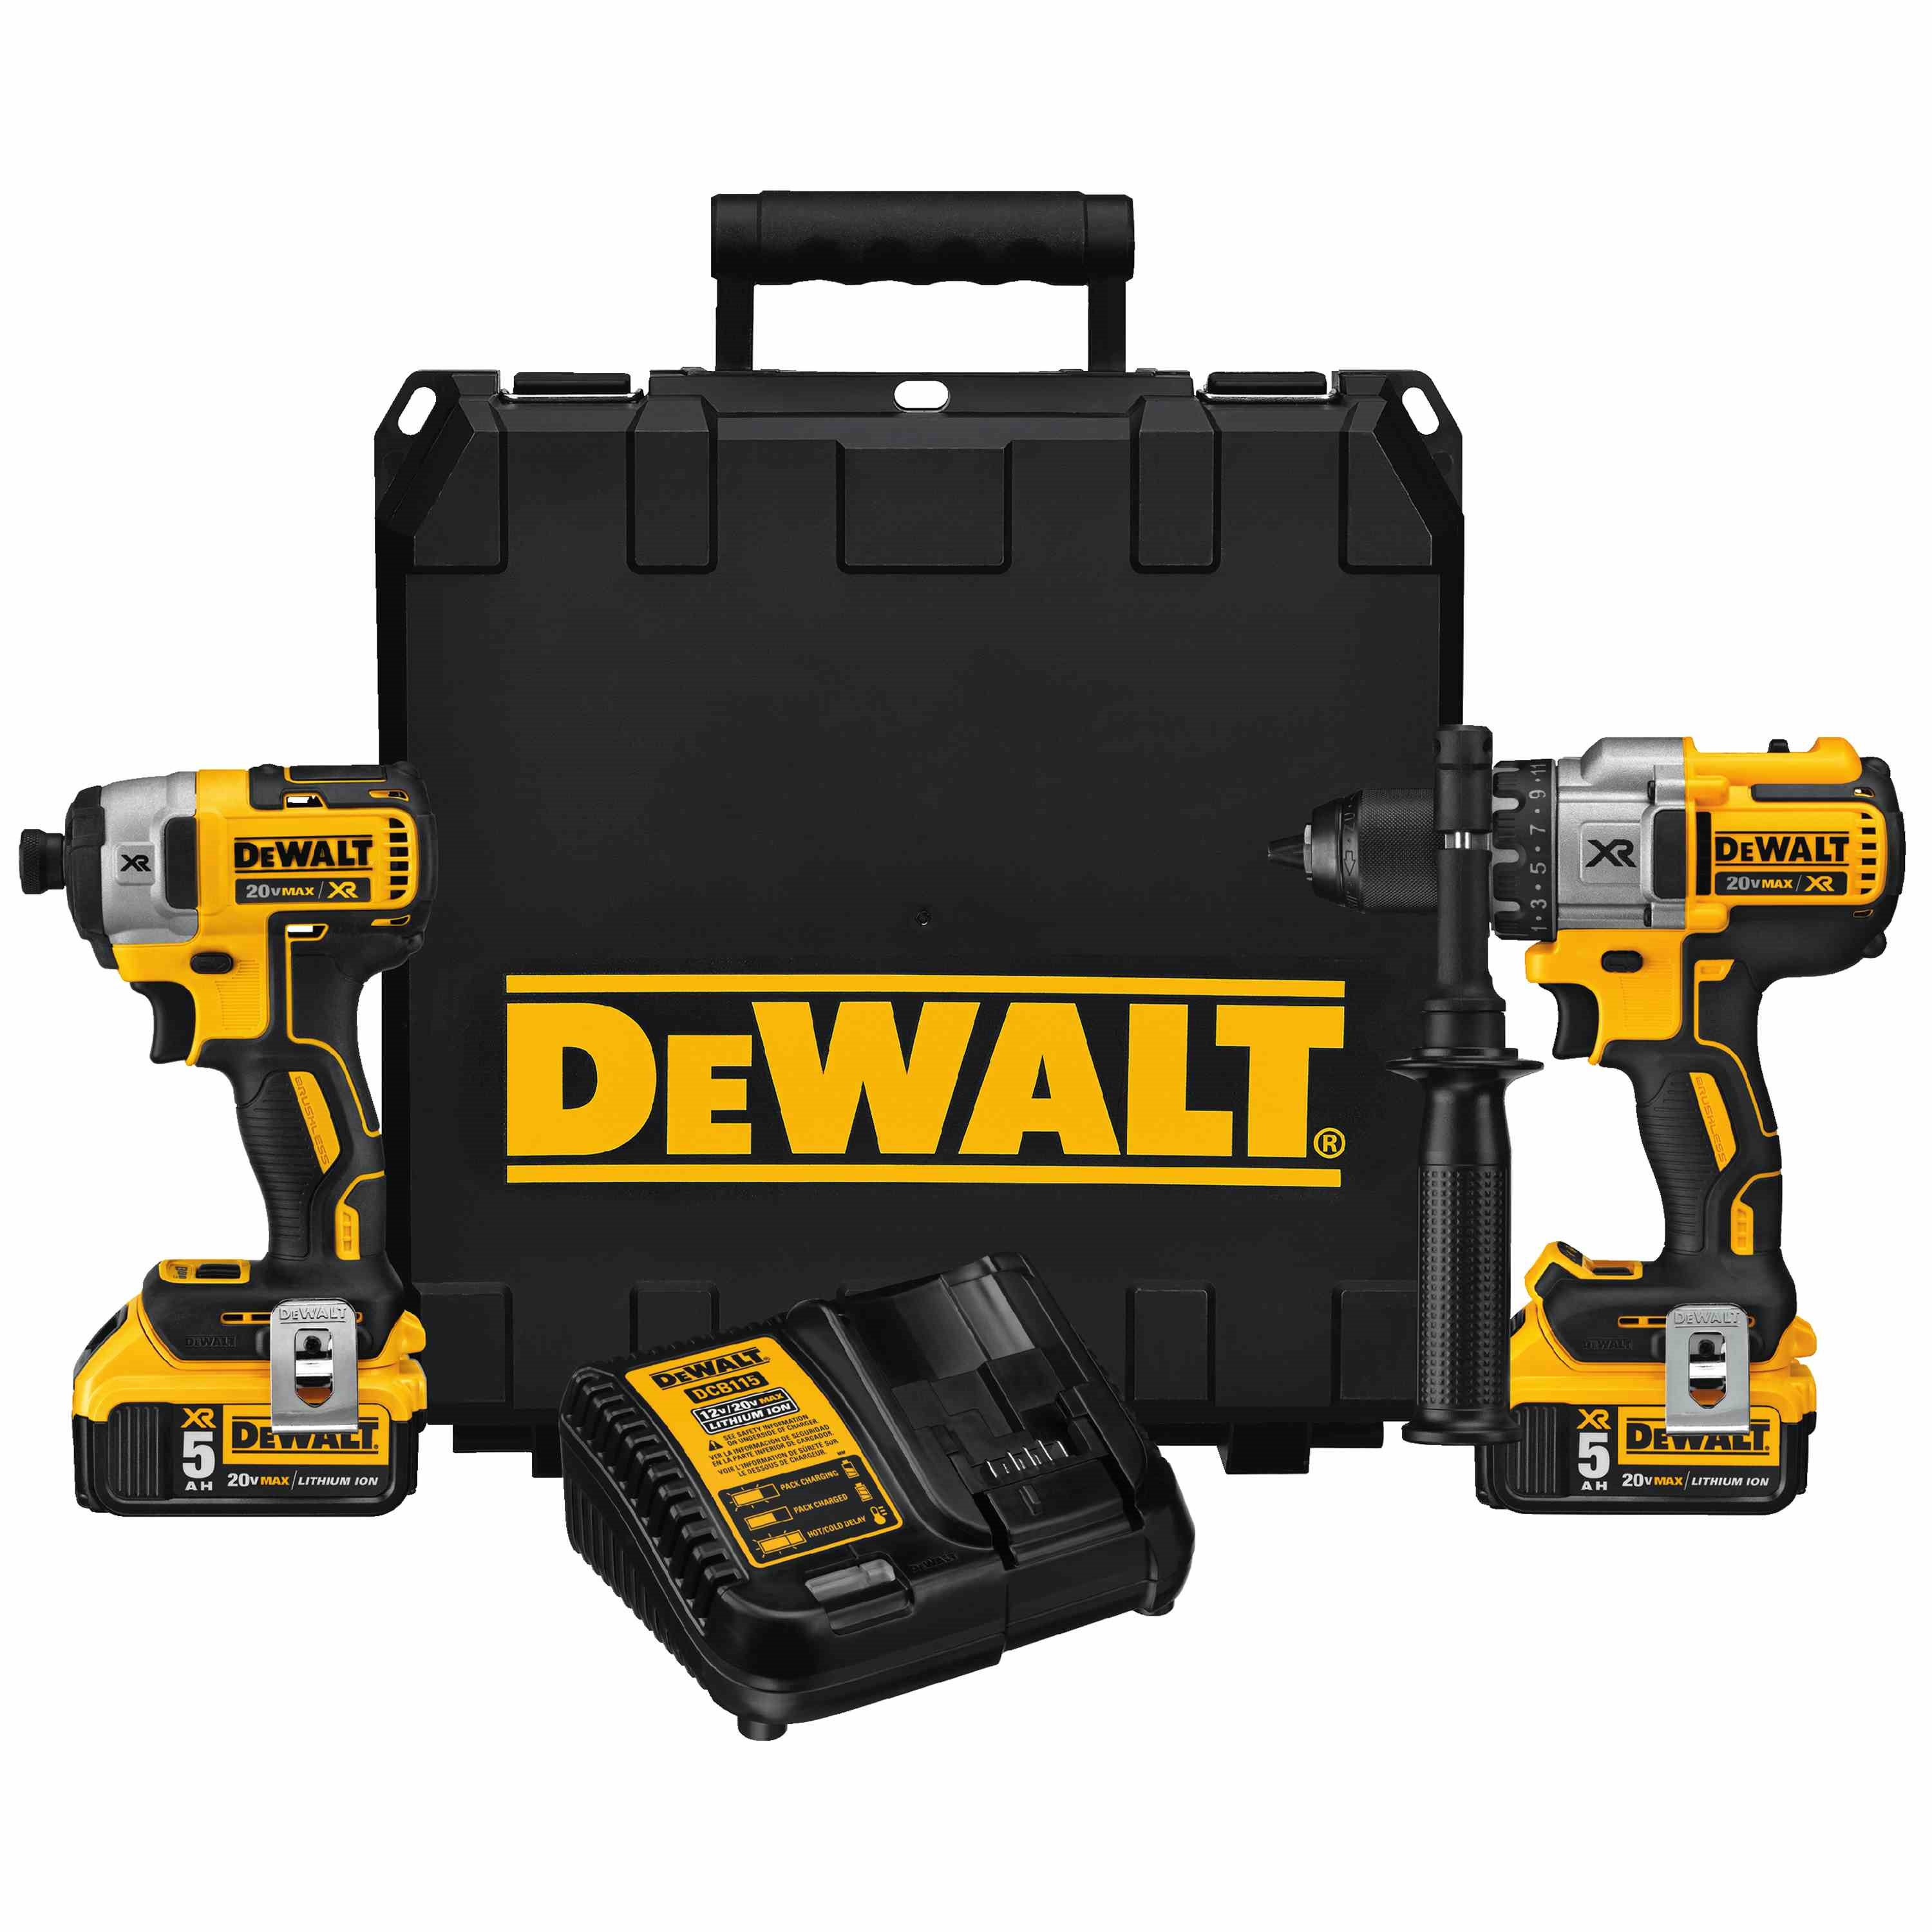 DWLT DCK299P2 20V MAX XR LITHIUM ION BRUSHLESS HAMMERDRILL / IMPACT DRIVER COMBO KIT (5.0AH KIT BOX)